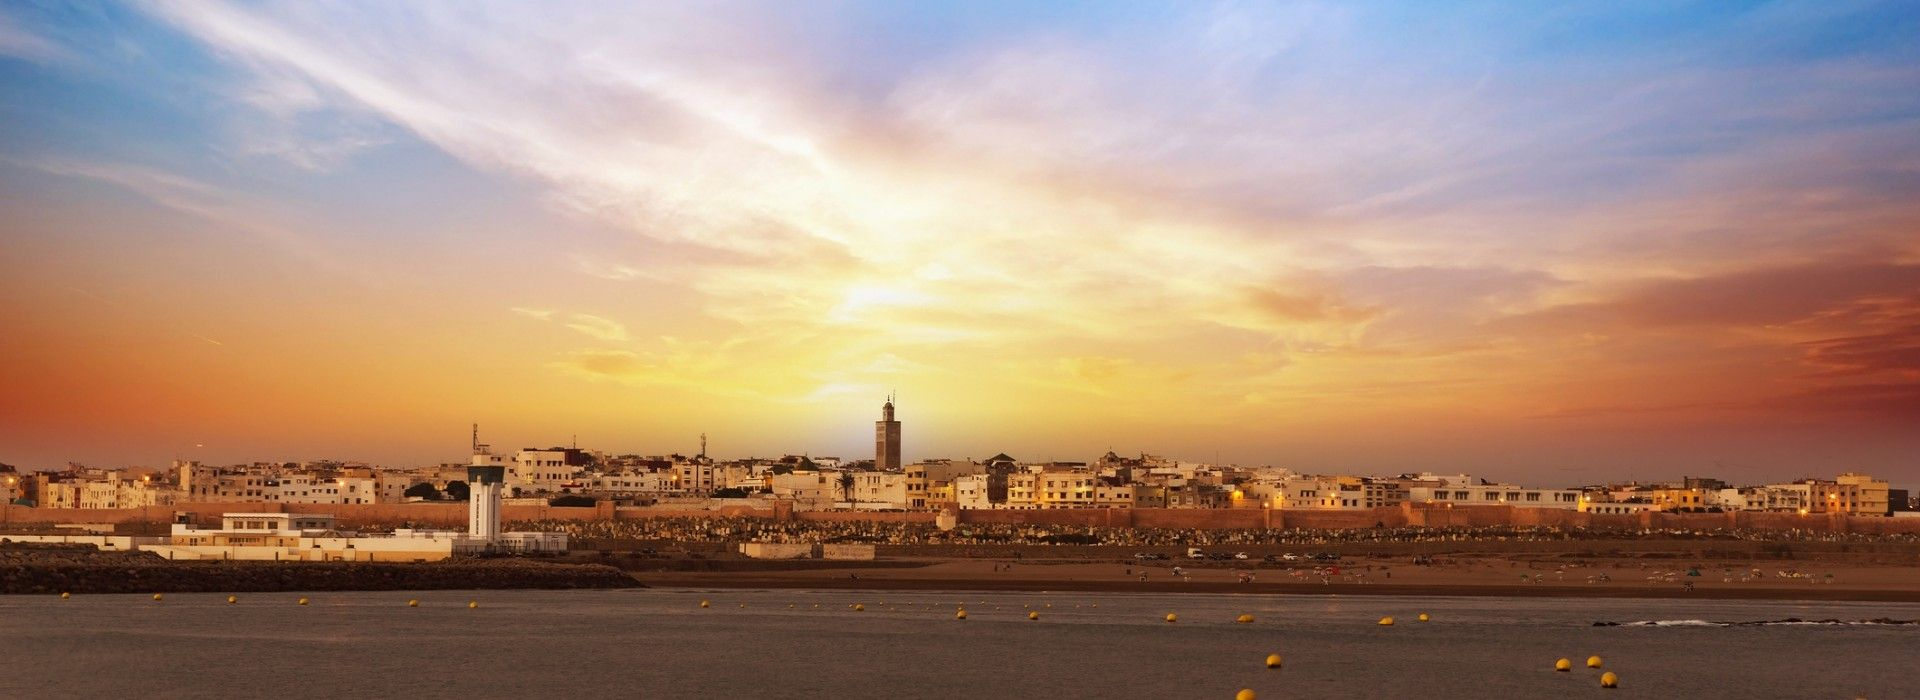 Sightseeing, attractions, culture and history Tours in Essaouira